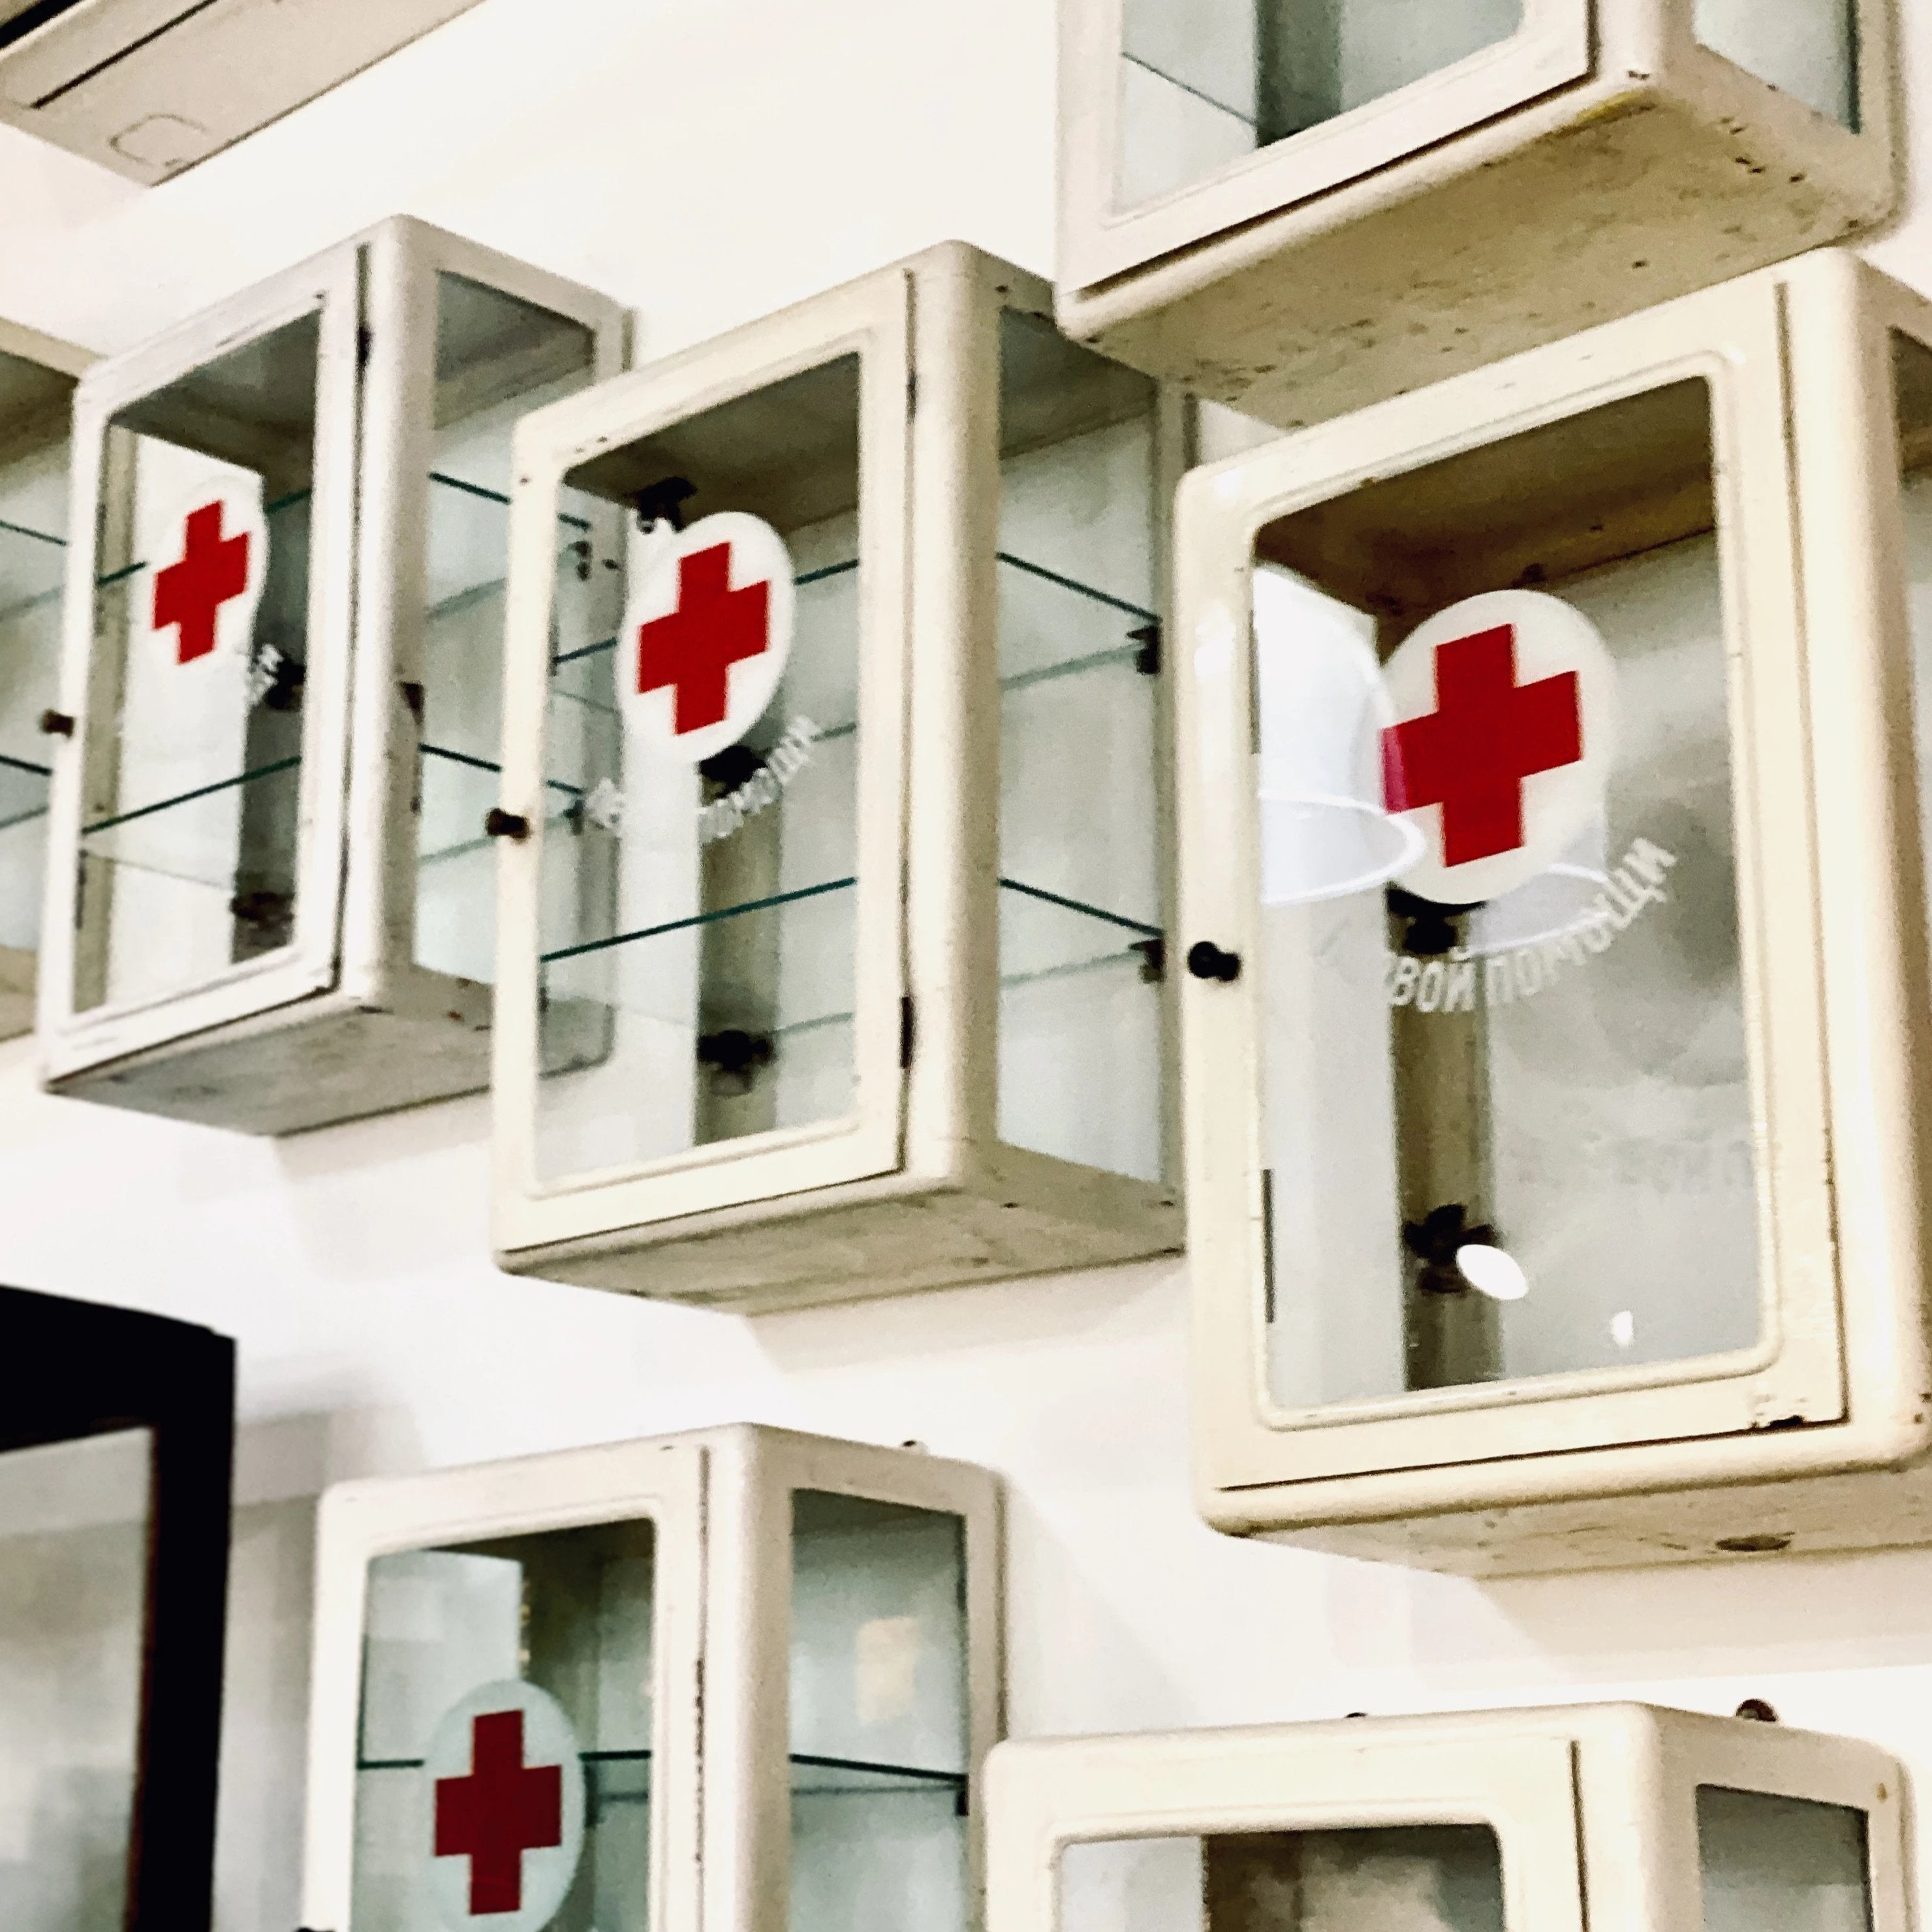 Russian First Aid Cabinets